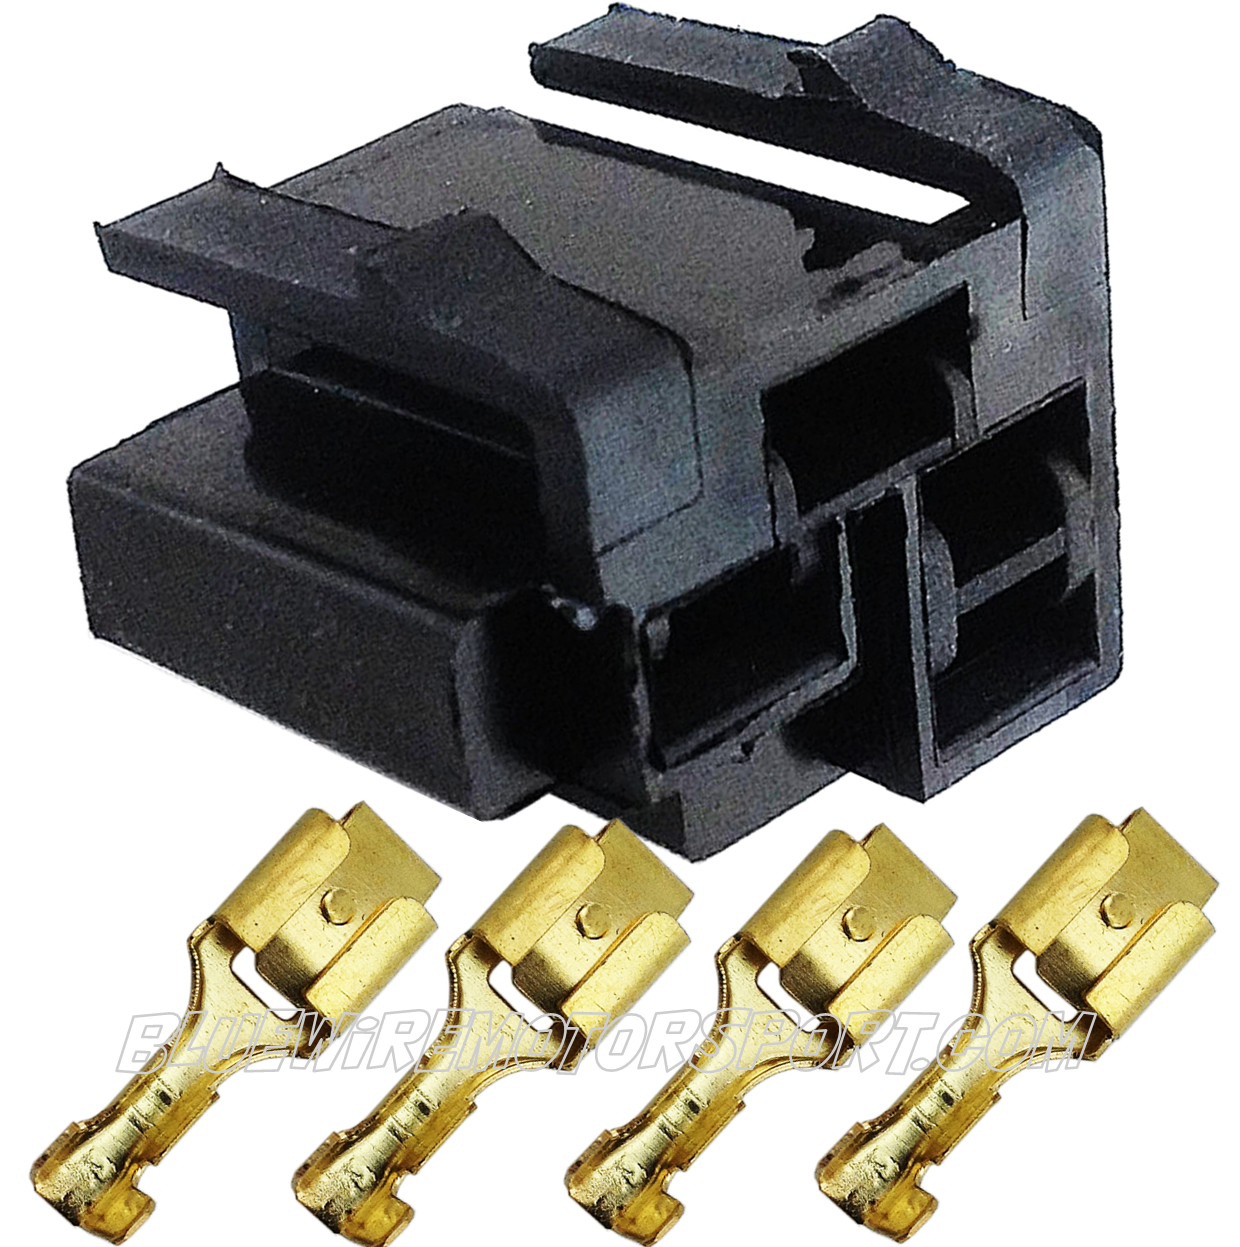 Our Gm Holden Ignition Connector Allows You To Connect